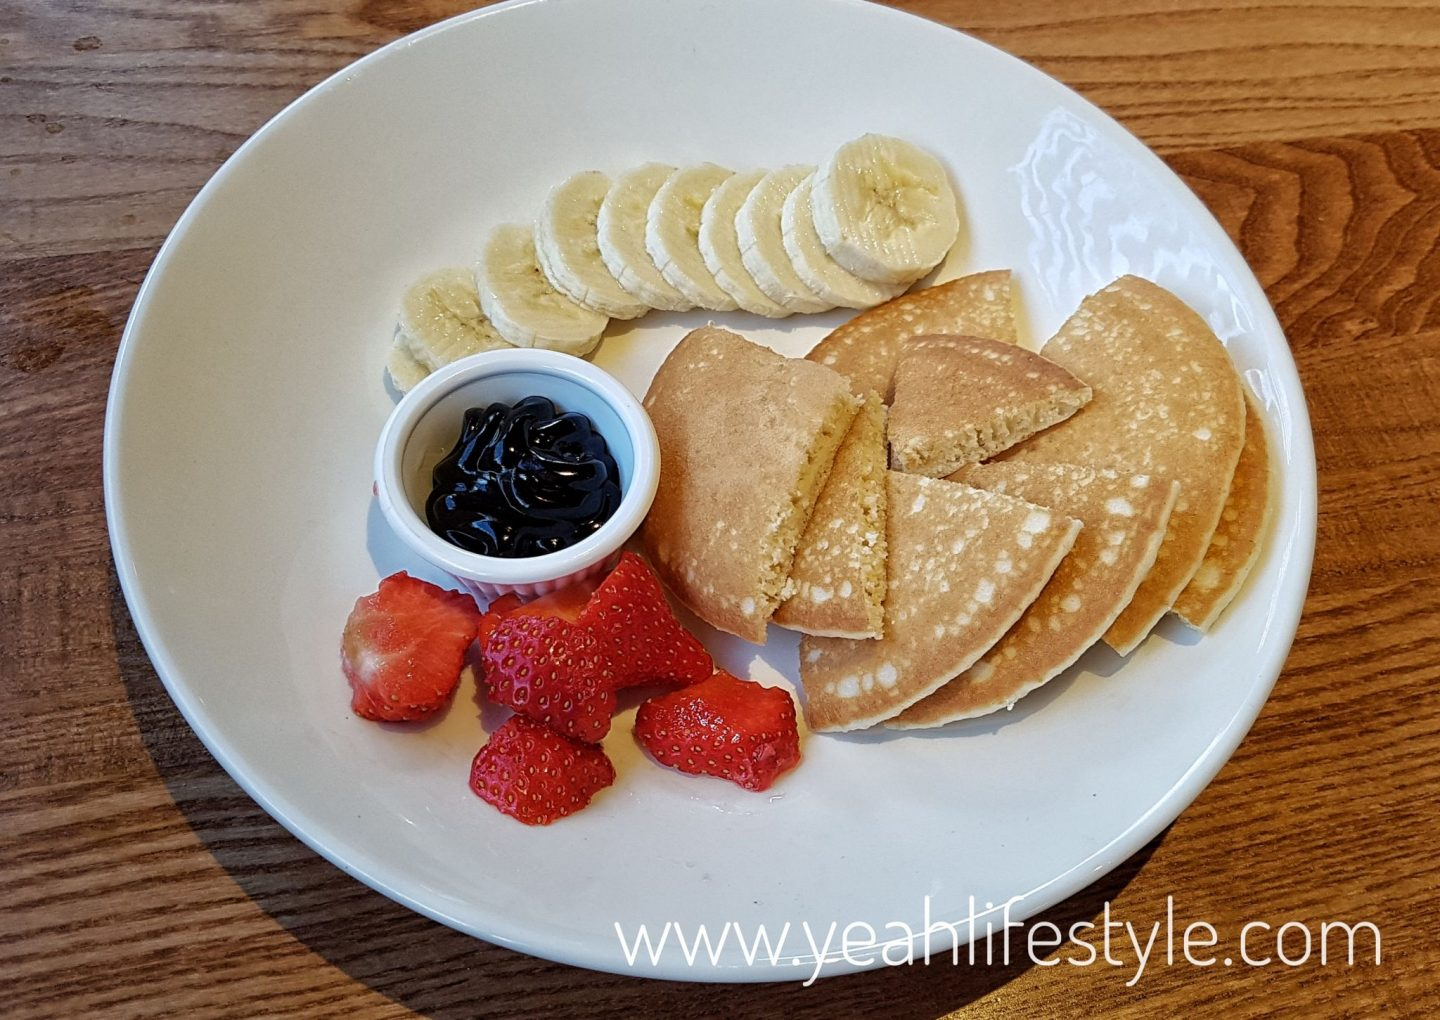 Beefeater-Springwood-Park-Macclesfield-Cheshire-Food-Blogger-Yeah-Lifestyle-Pancakes